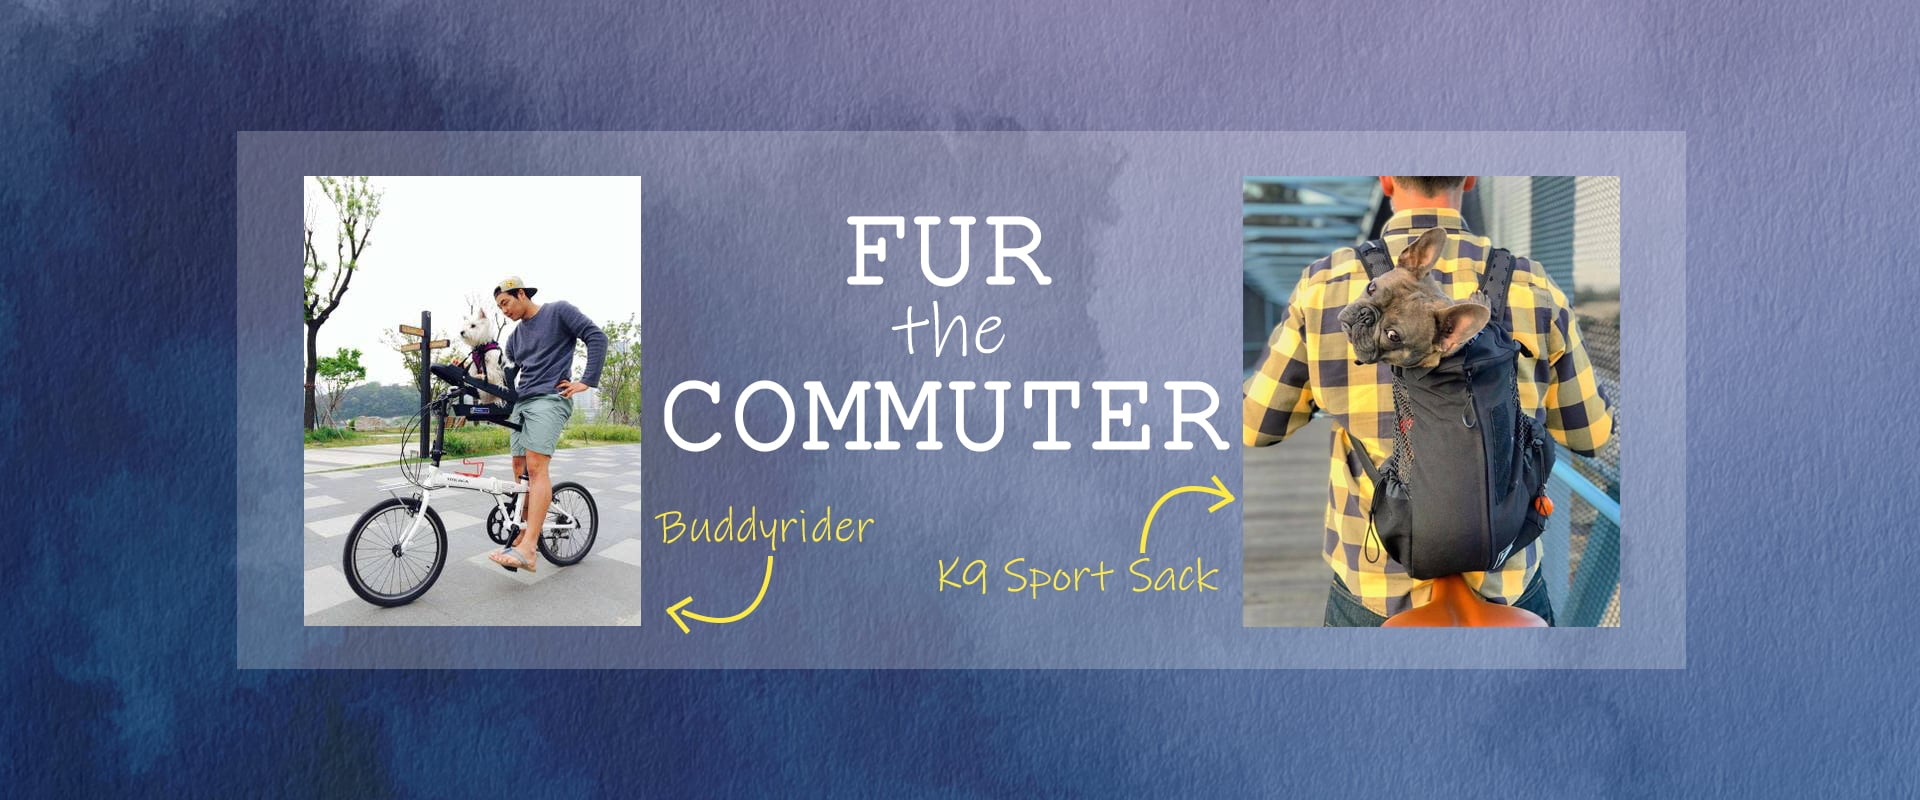 Fur the commuter